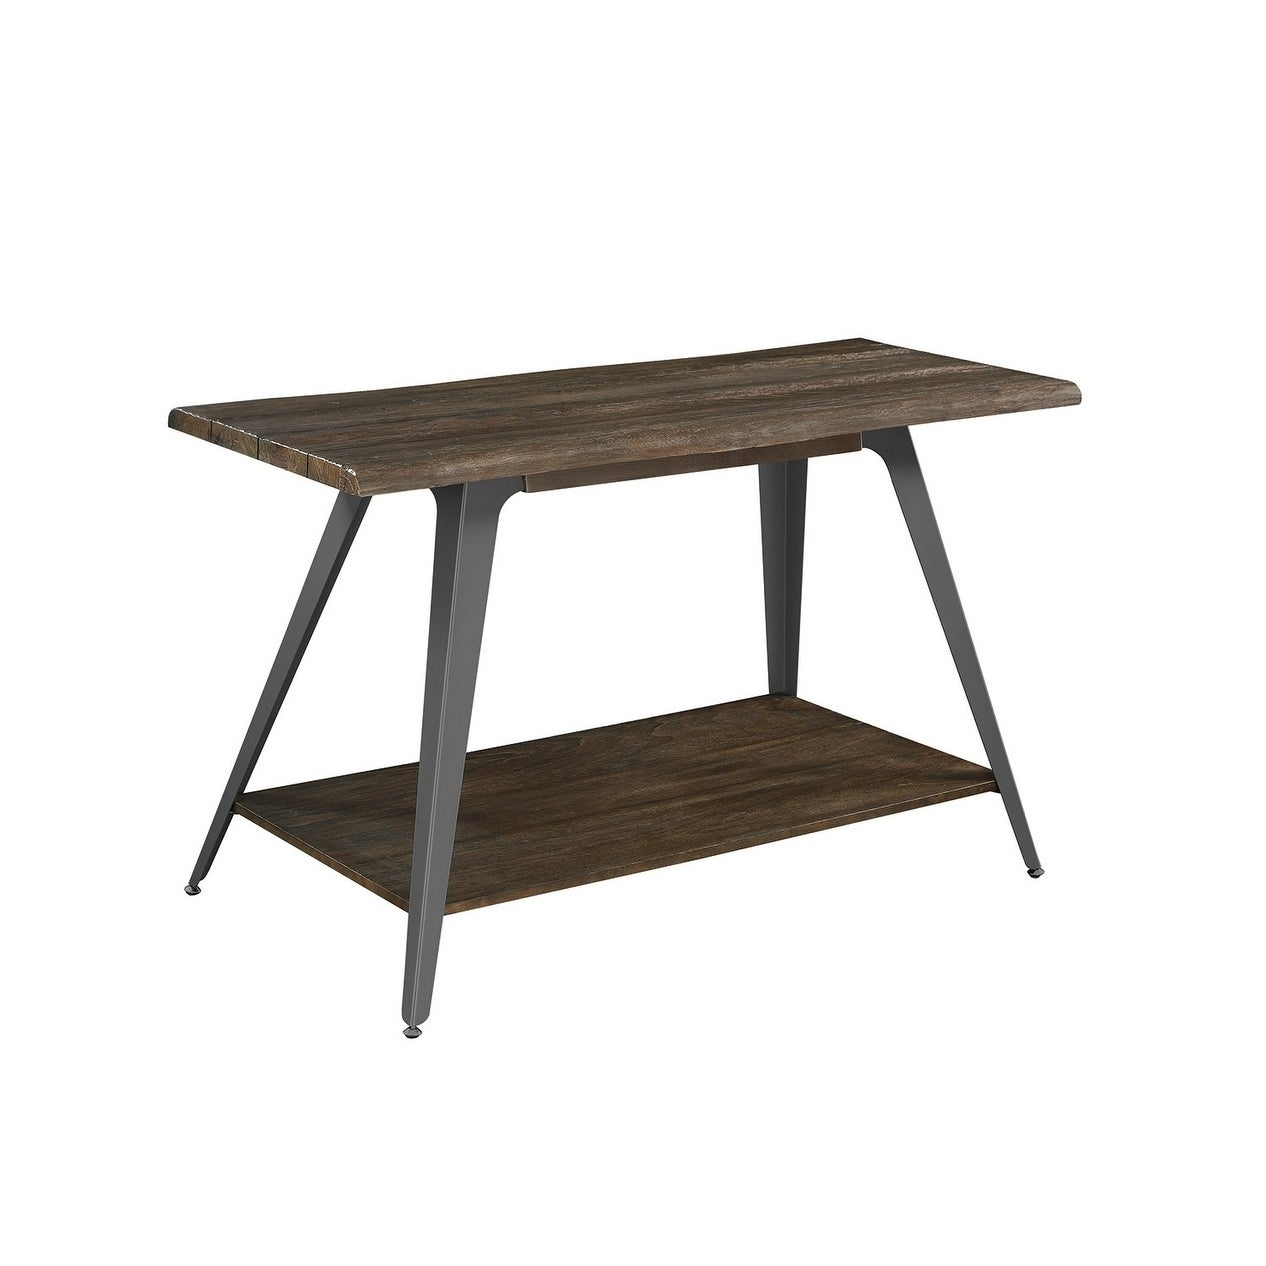 Proctor Wood And Metal Sofa Table On Sale Overstock 28730672